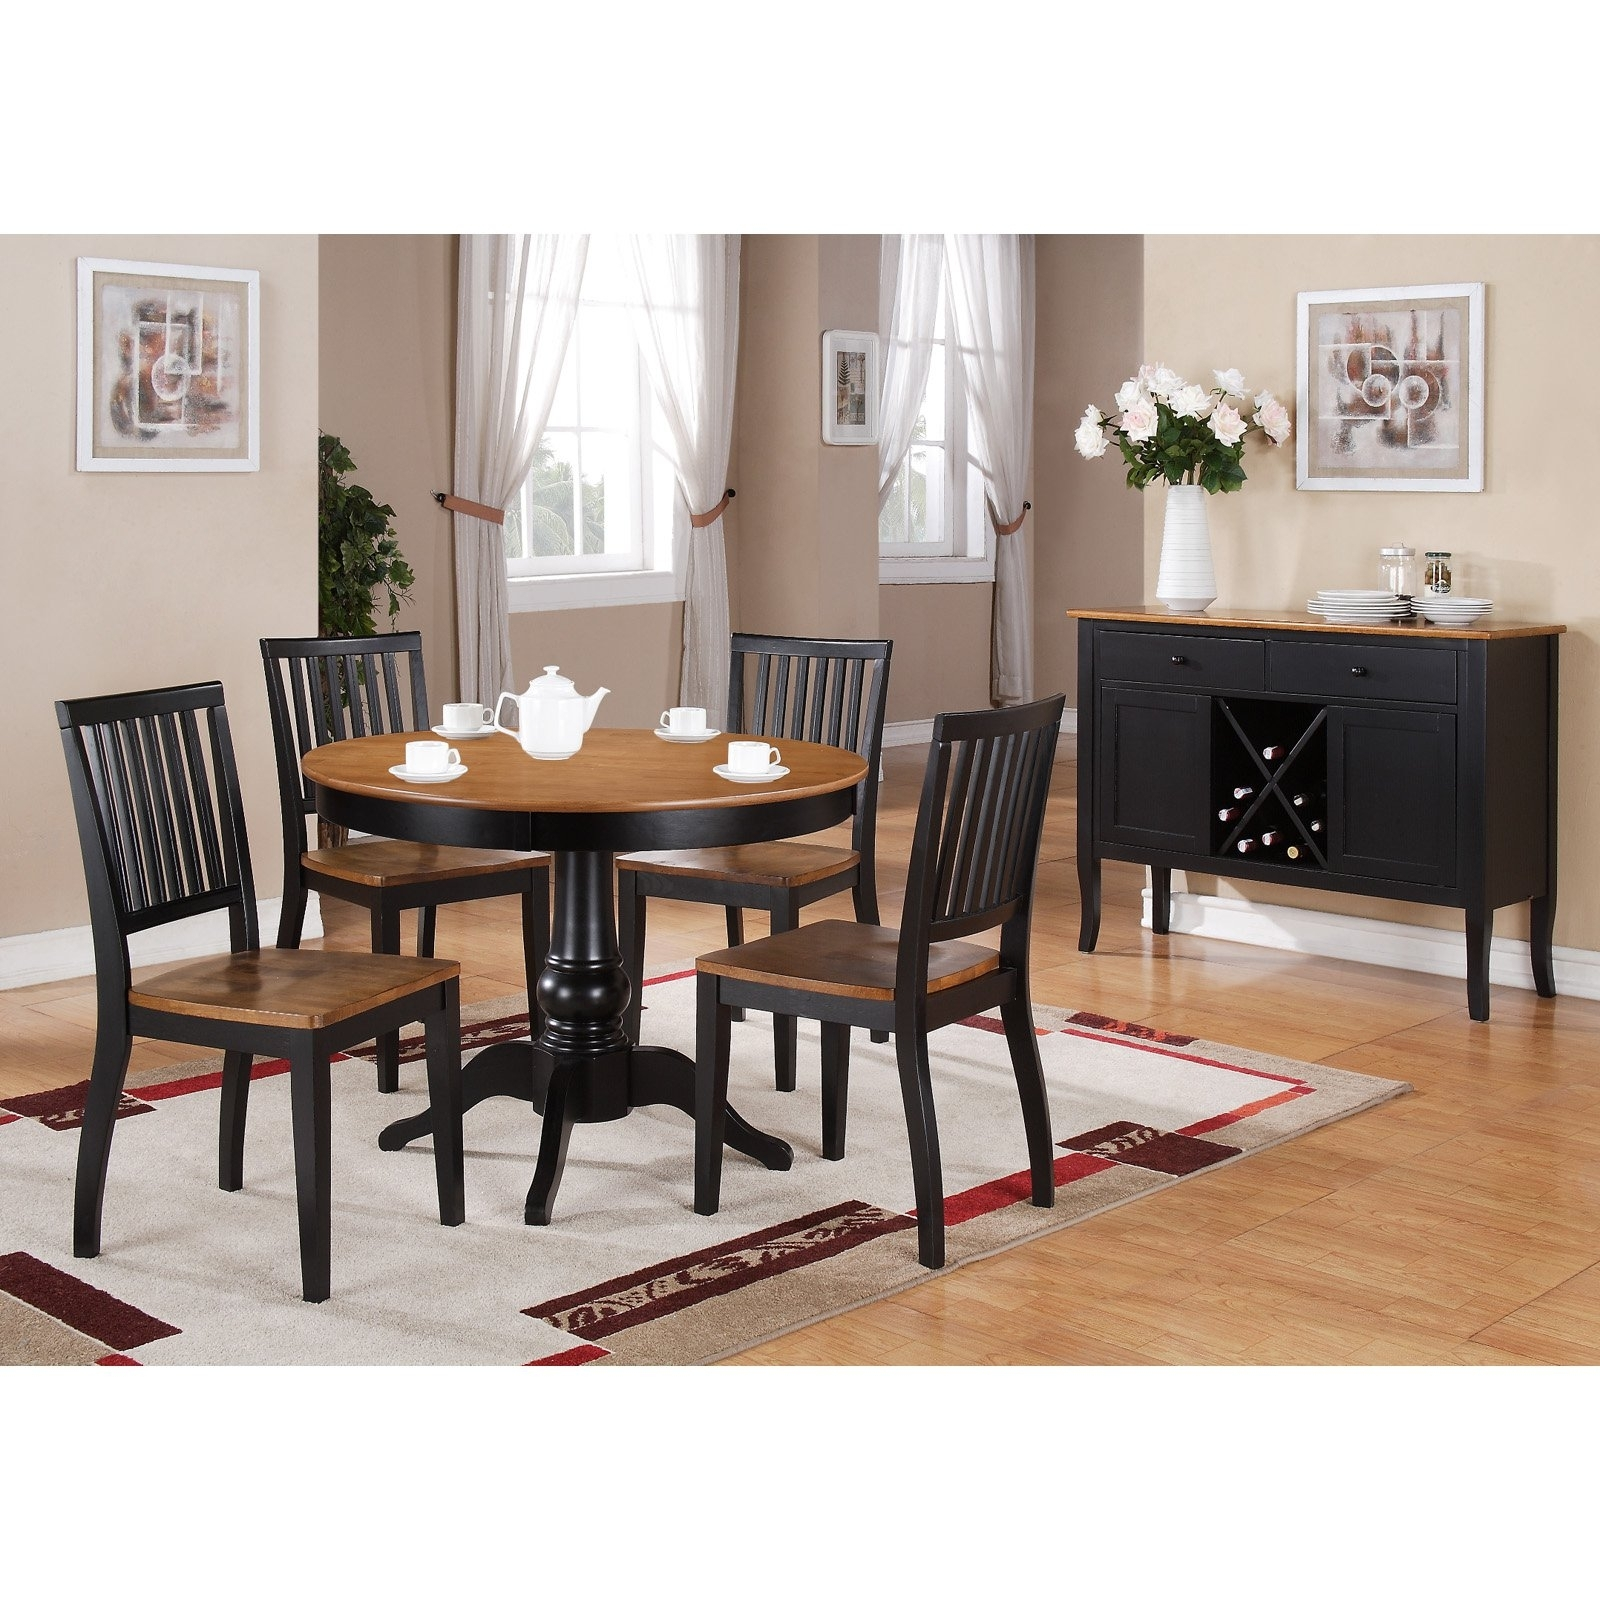 Steve Silver 5 Piece Candice Two Tone Round Pedestal Dining Table Throughout Most Current Candice Ii 5 Piece Round Dining Sets (Image 16 of 20)